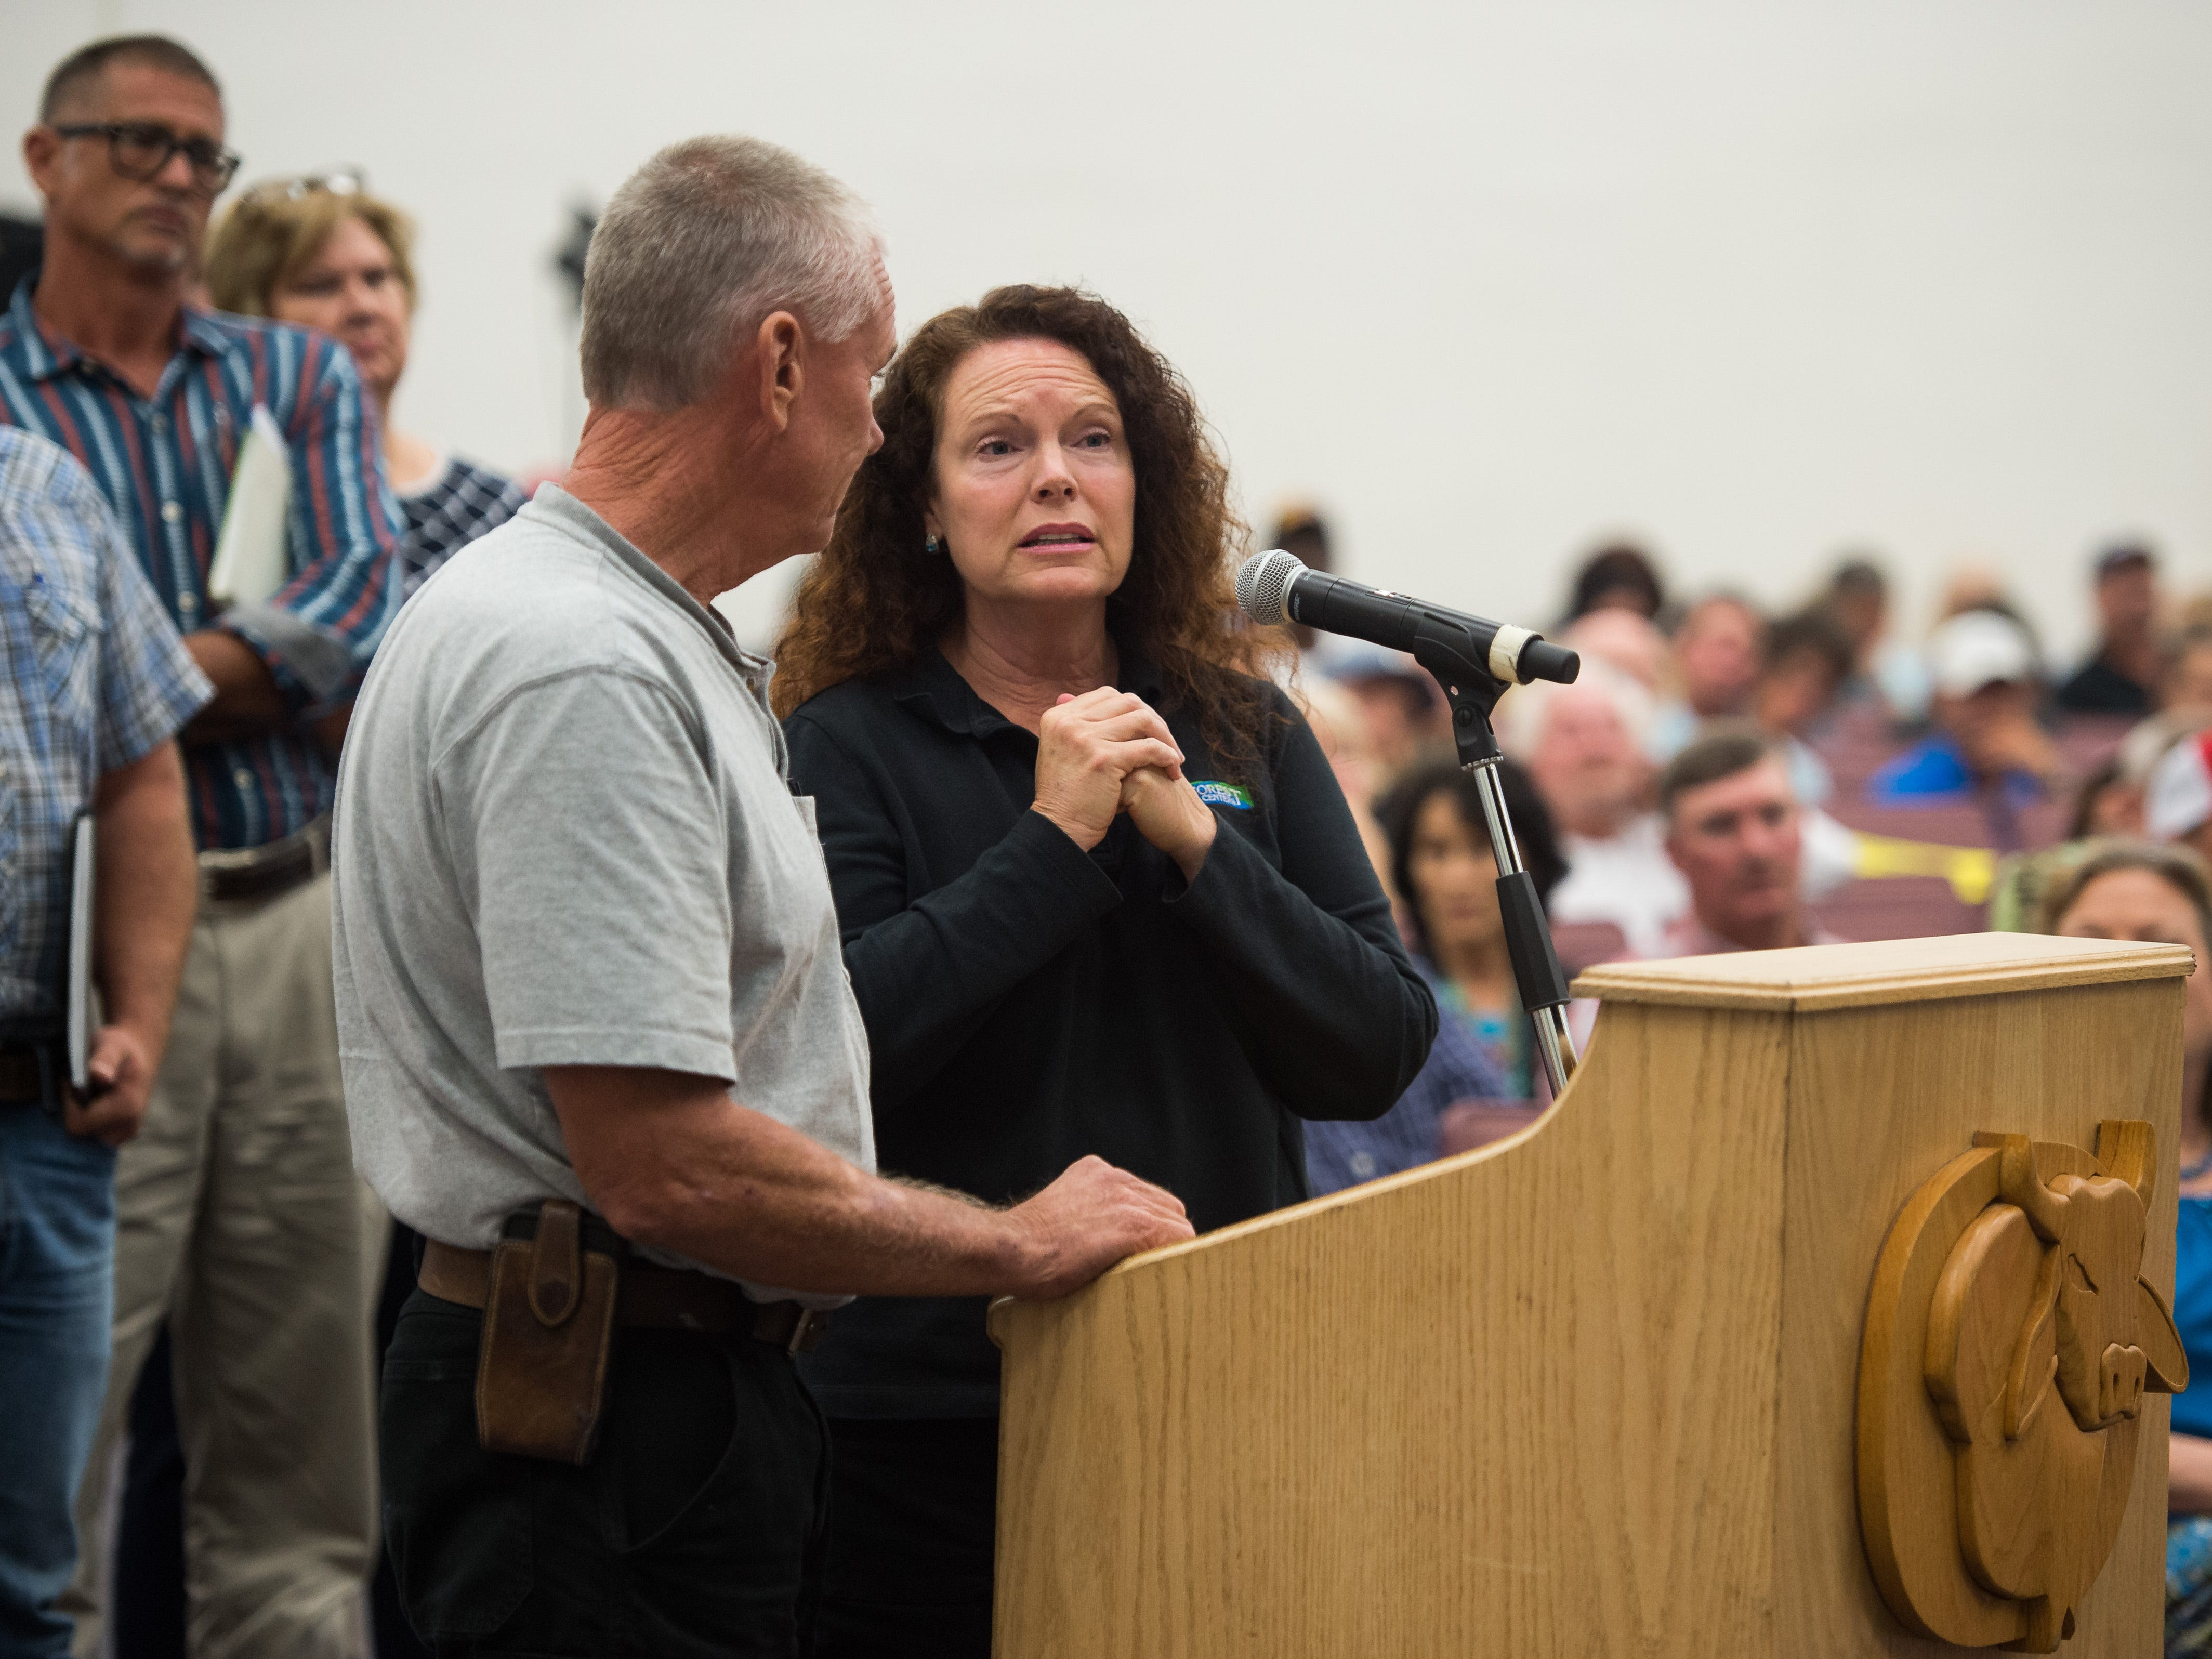 Okeechobee resident Tracy Campbell, who works in Stuart as director of sales and marketing for River Forest Yachting Centers, speaks during a joint commission meeting at Okeechobee High School on Tuesday, May 7, 2019, while her husband, John Helfrich, manager of River Forest Yachting Centers in LaBelle, stands beside her. Campbell and Helfrich spoke about how every aspect of their life is tied to Lake Okeechobee, and how the lowering water level has negatively affected business. County commissioners from Martin, Palm Beach, Glades, Hendry and Okeechobee attended the meeting, where stakeholders voiced their concerns following statements from the Army Corps of Engineers and Rep. Brian Mast's office.